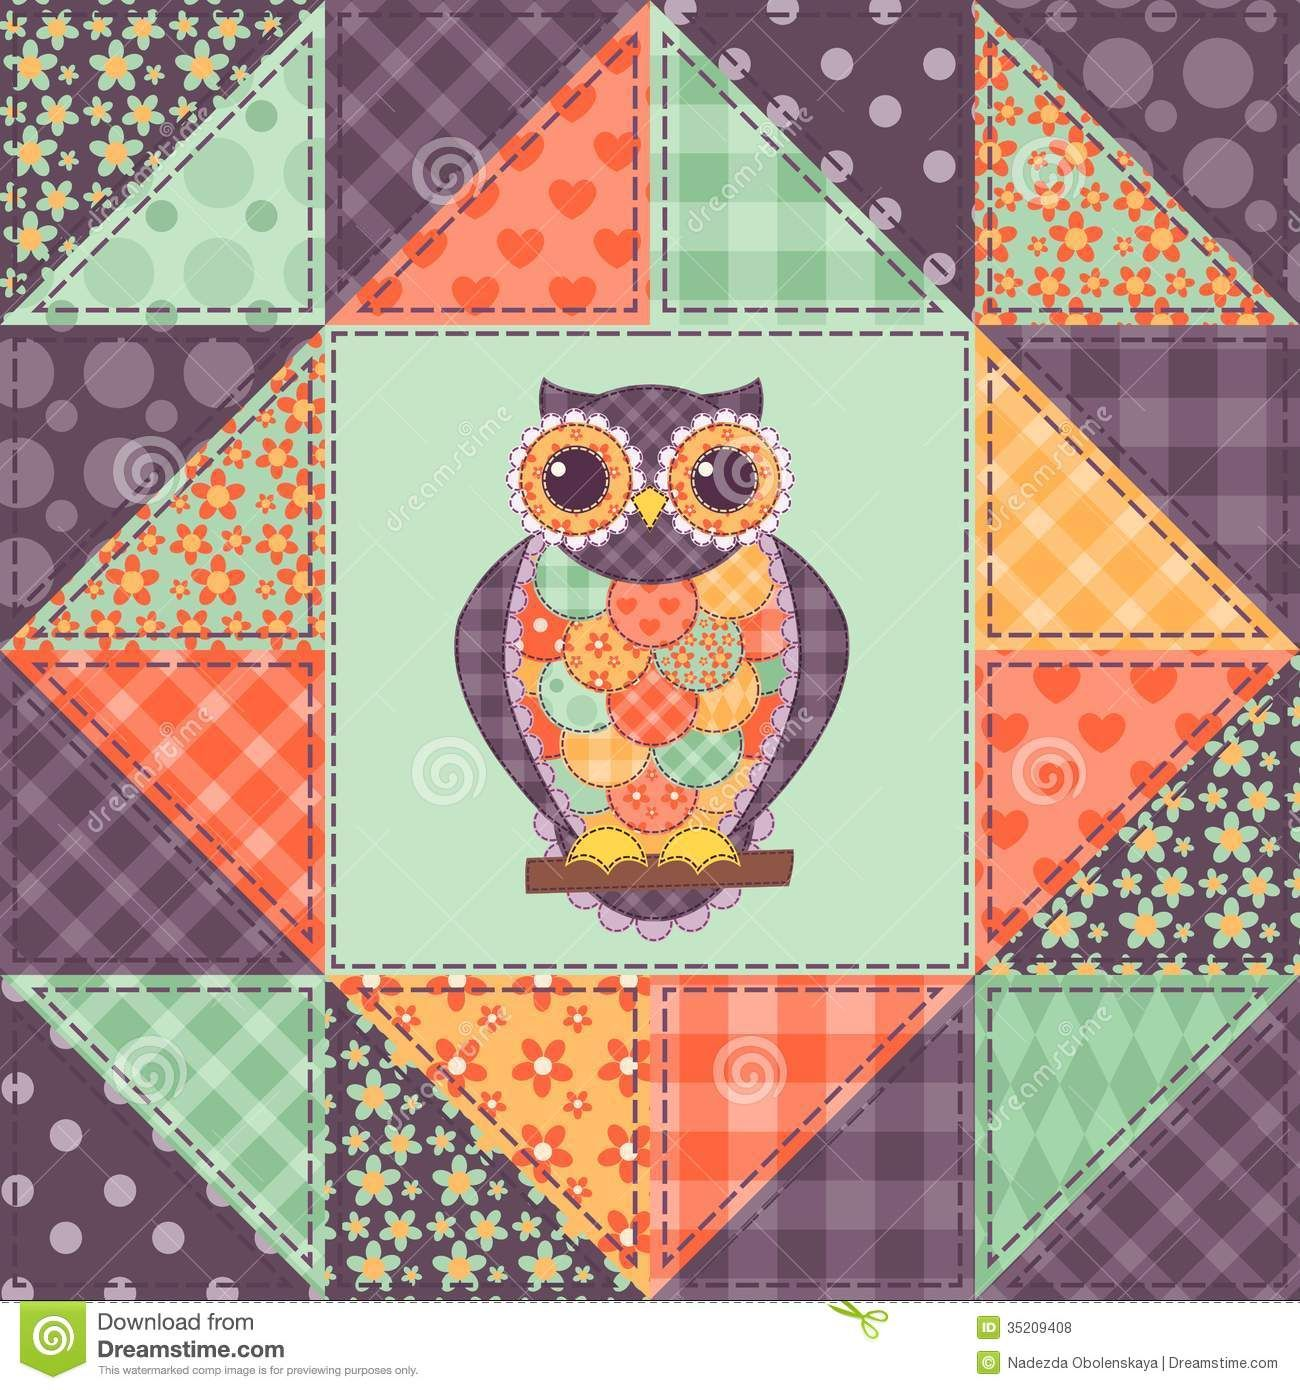 Patchwork Quilt Block Patterns Free : Patchwork Patterns Seamless patchwork owl pattern. Background. NICU/PICU UNIV OF IOWA QUILTS ...